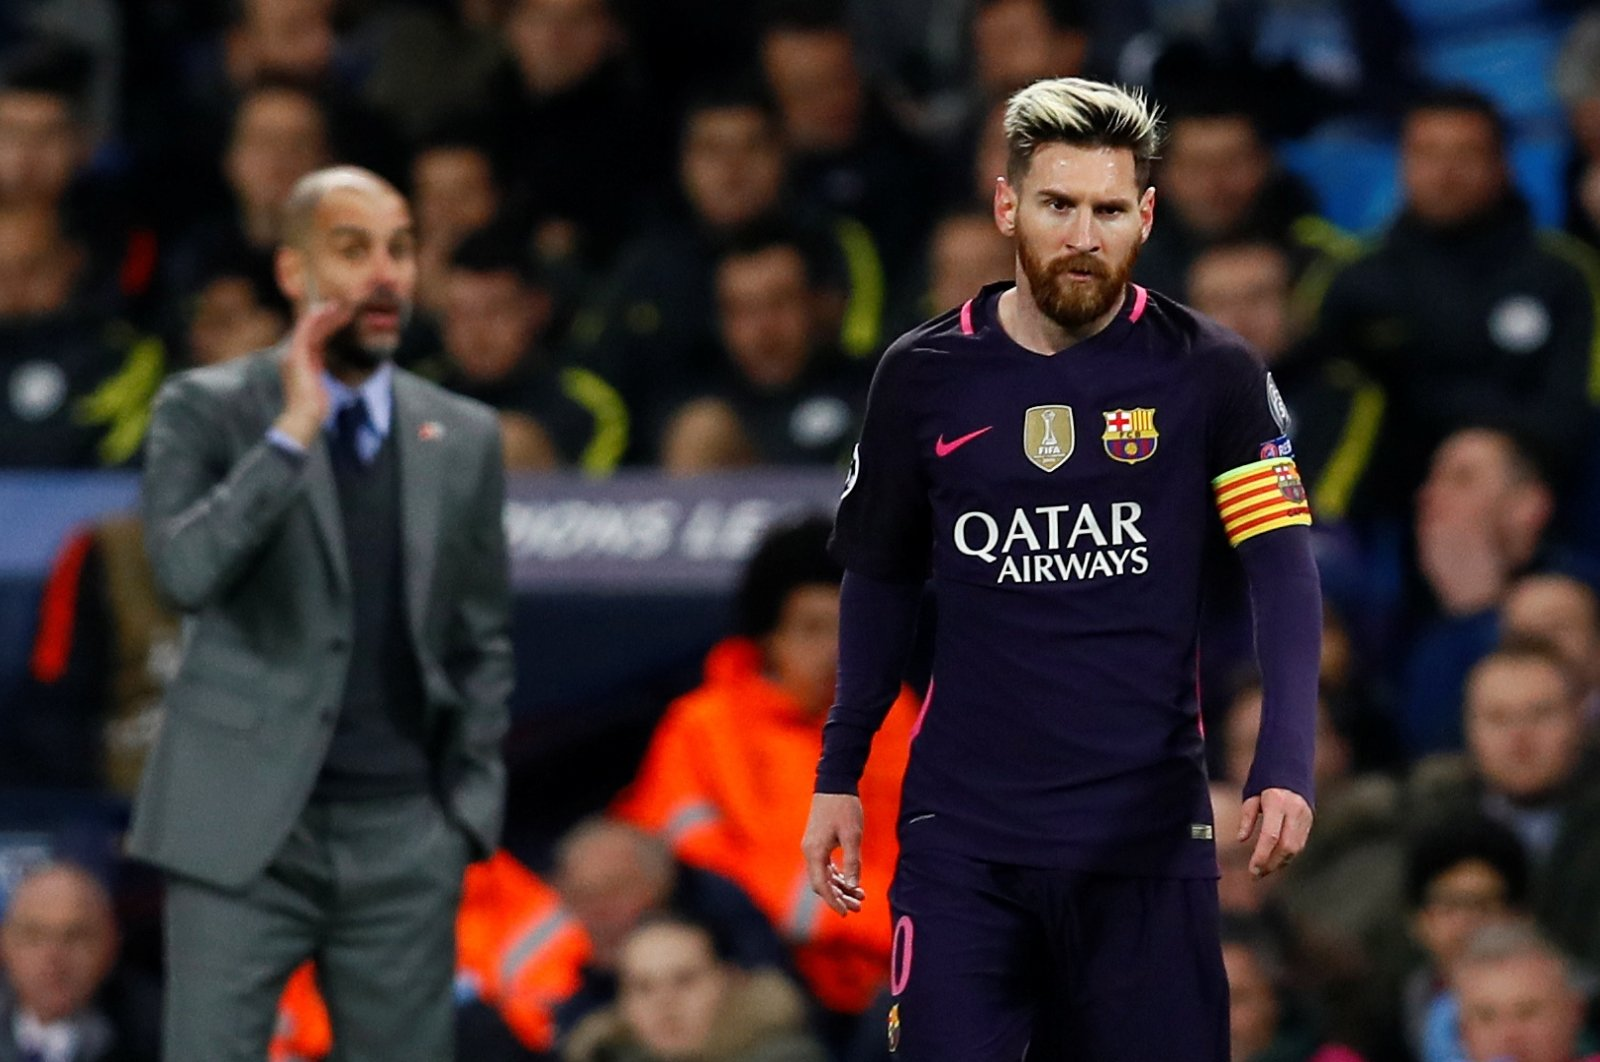 Manchester City manager Pep Guardiola and Barcelona's Lionel Messi during a UEFA Champions League Group C match at the Etihad Stadium, Manchester, England, Nov. 1, 2016 (Reuters Photo)